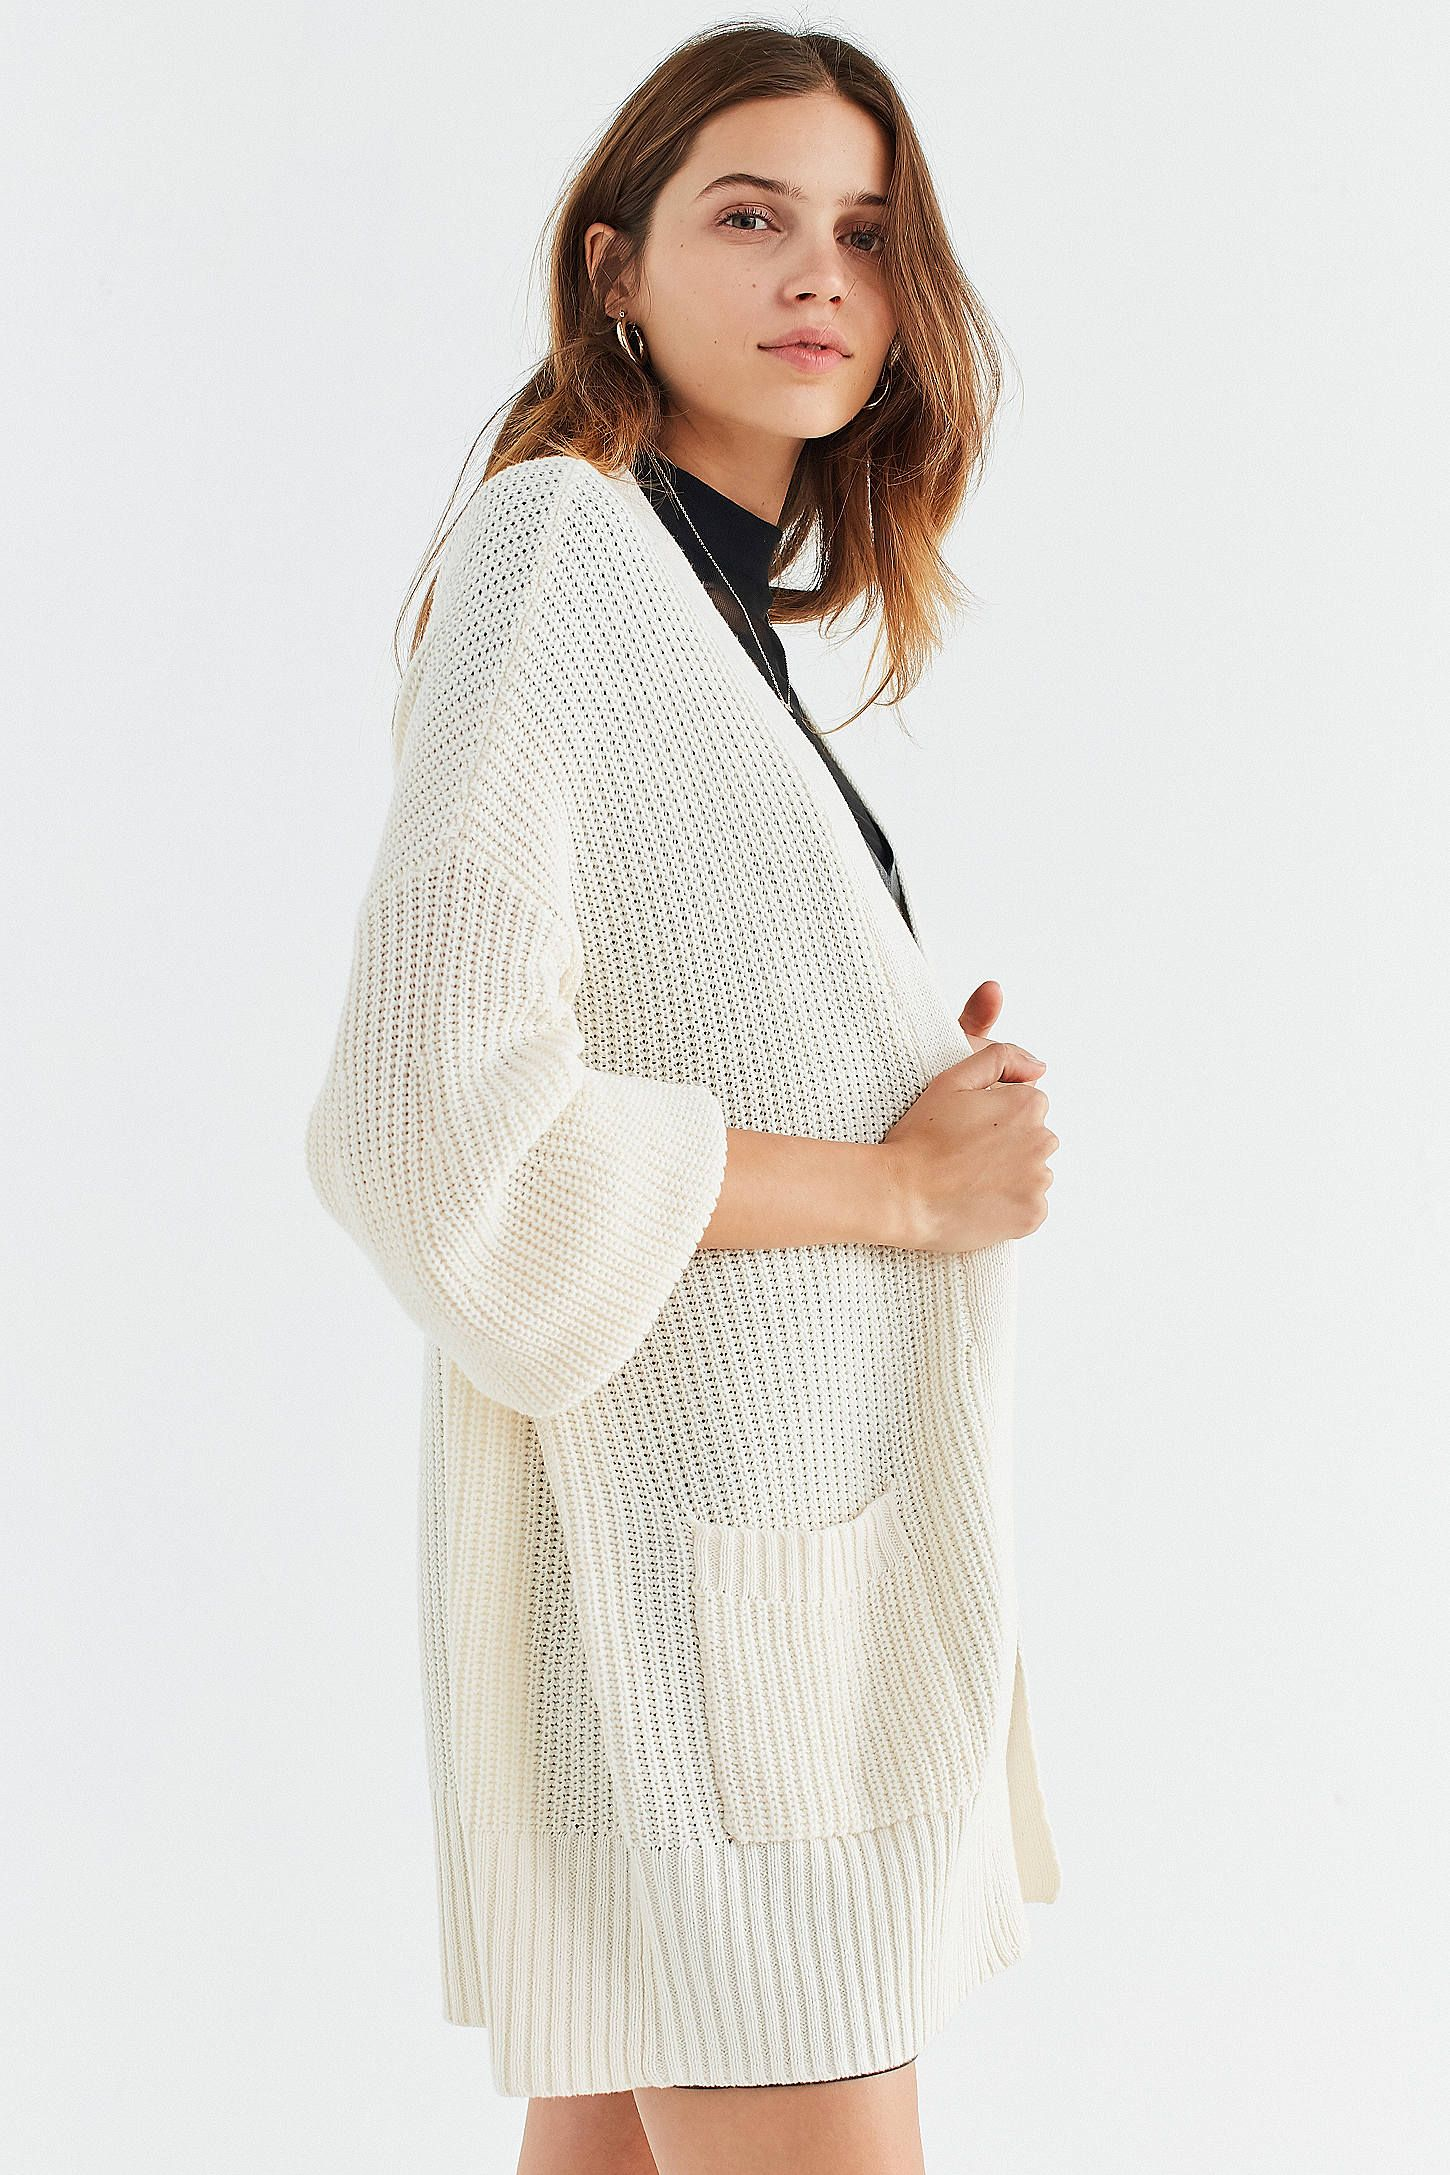 75d407a5d4f72 BDG Charlie Dolman Cardigan in Ivory. BDG Charlie Dolman Cardigan in Ivory  Cardigans For Women, Sweater Cardigan, Urban Outfitters,